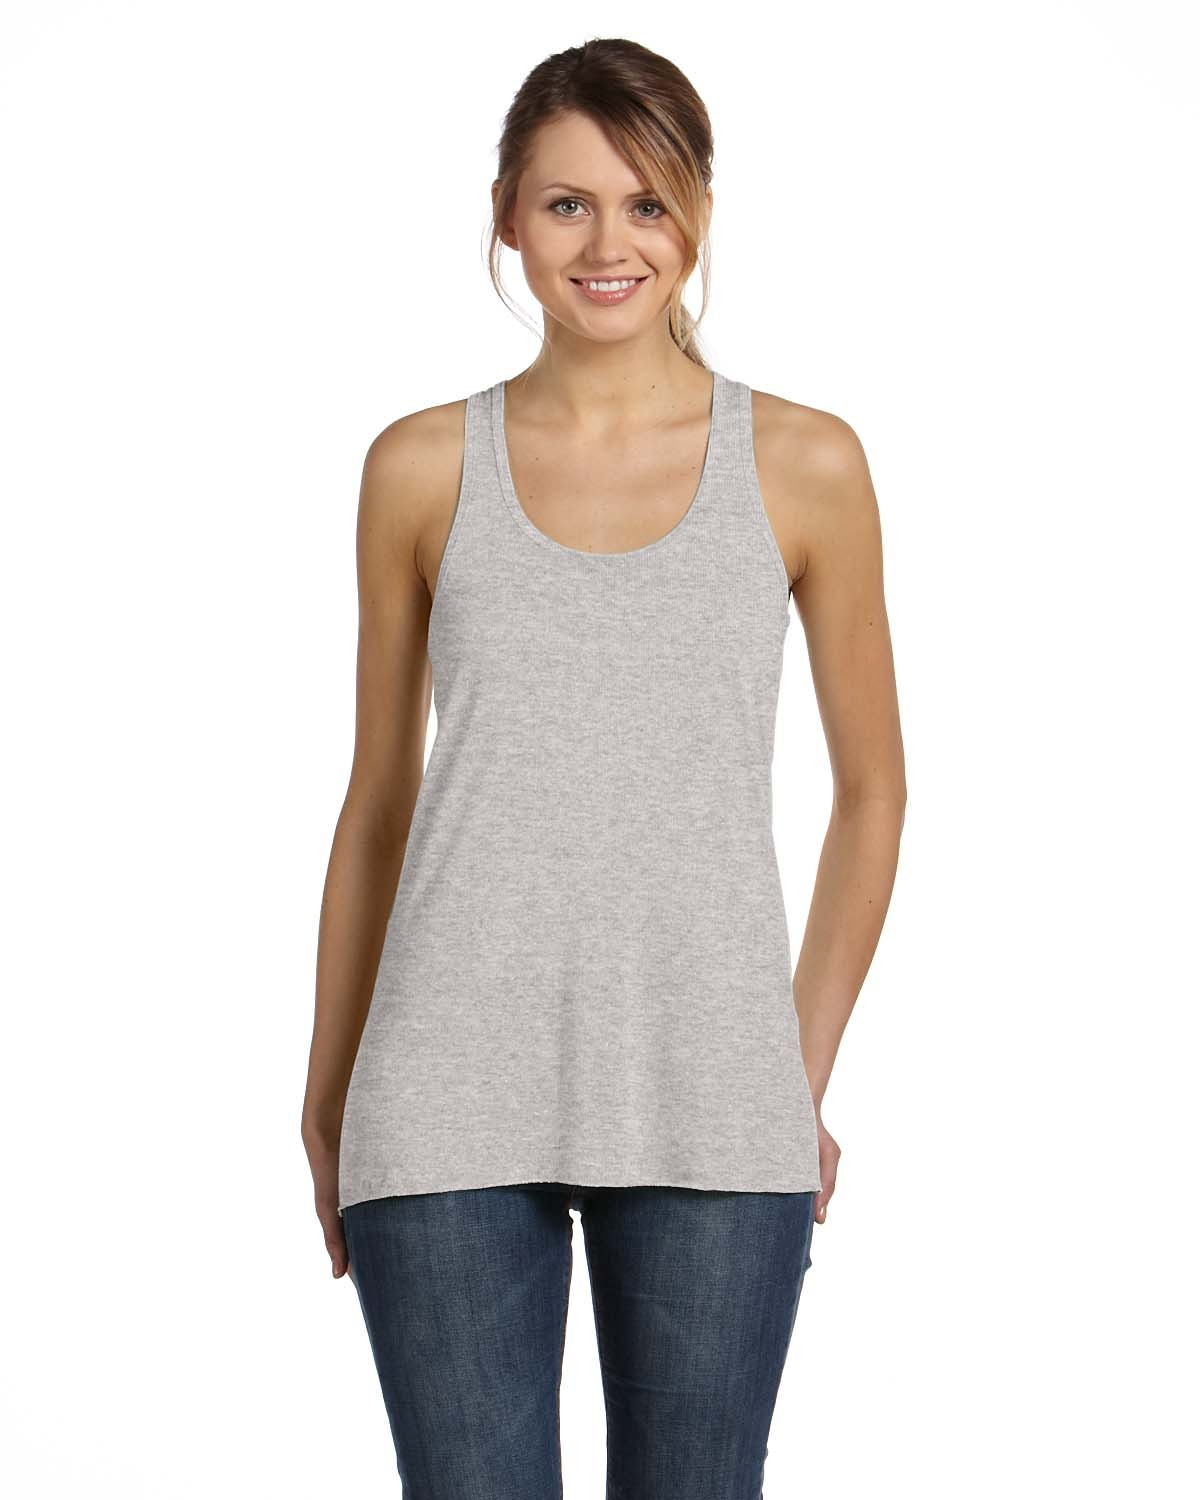 B8800 Bella + Canvas ATHLETIC HEATHER